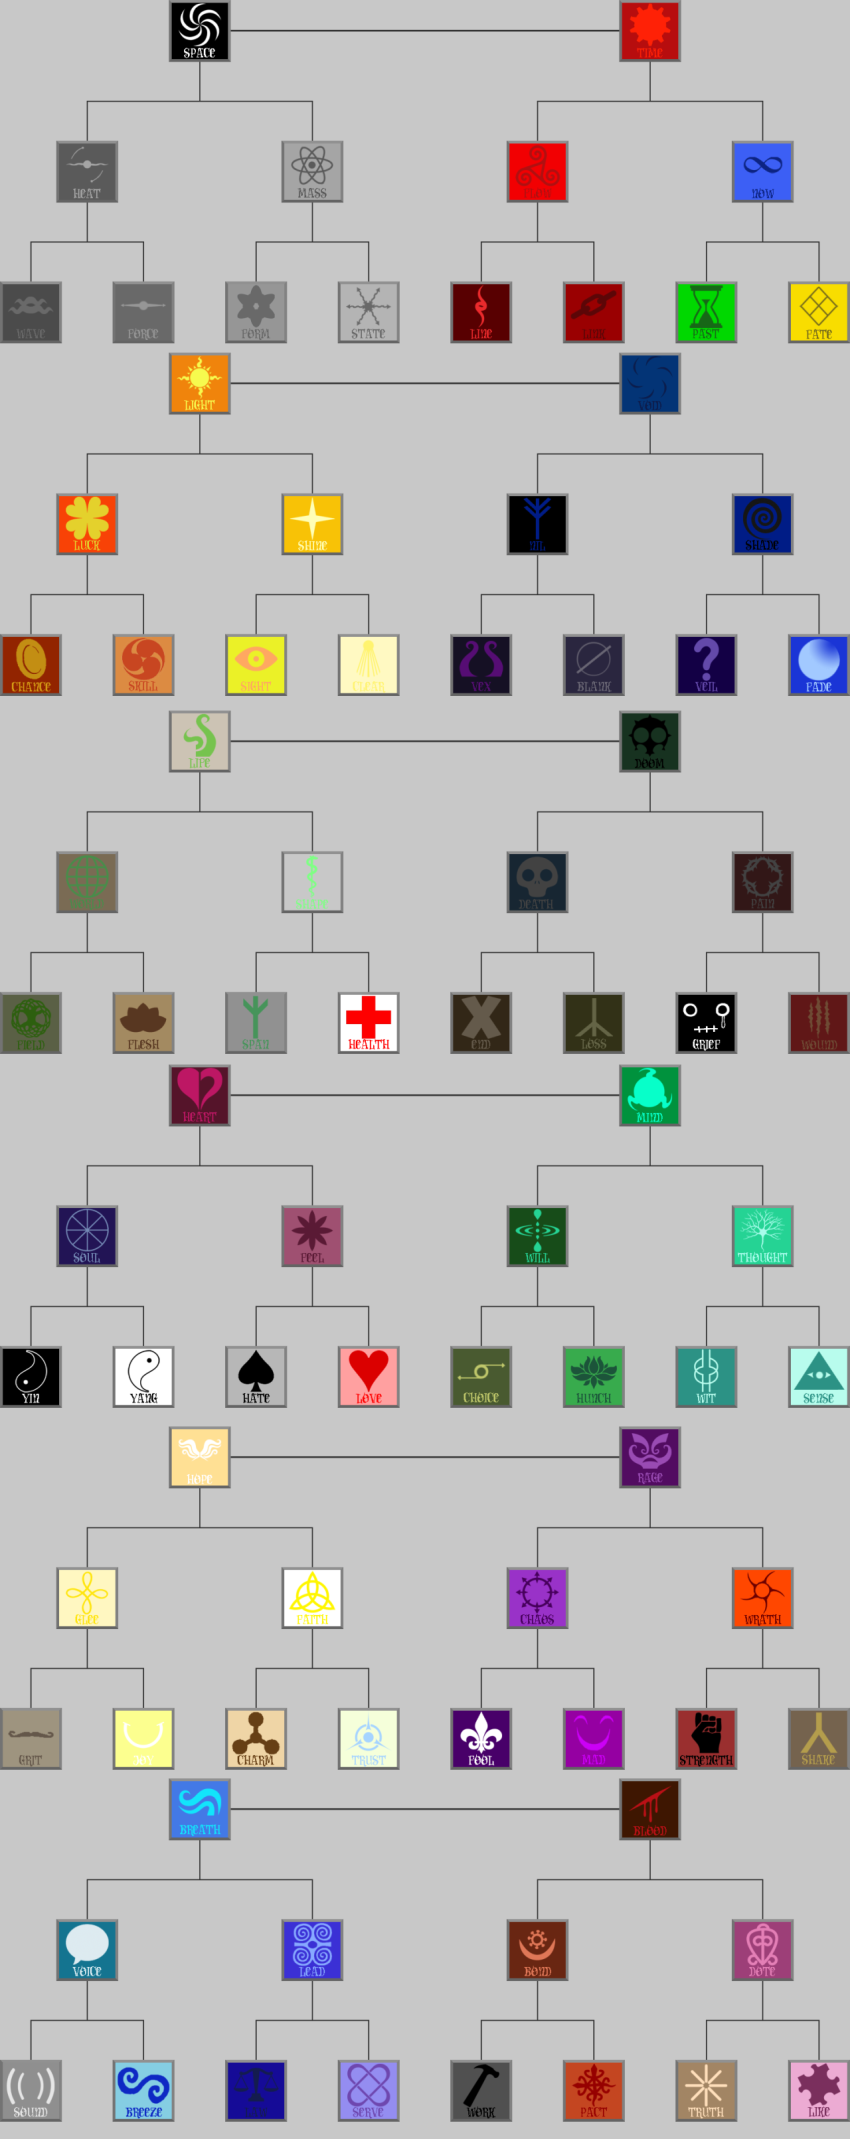 aspect_symbol blood_aspect breath_aspect chart doom_aspect heart_aspect hope_aspect life_aspect light_aspect mind_aspect not_fanart rage_aspect space_aspect time_aspect void_aspect wakraya